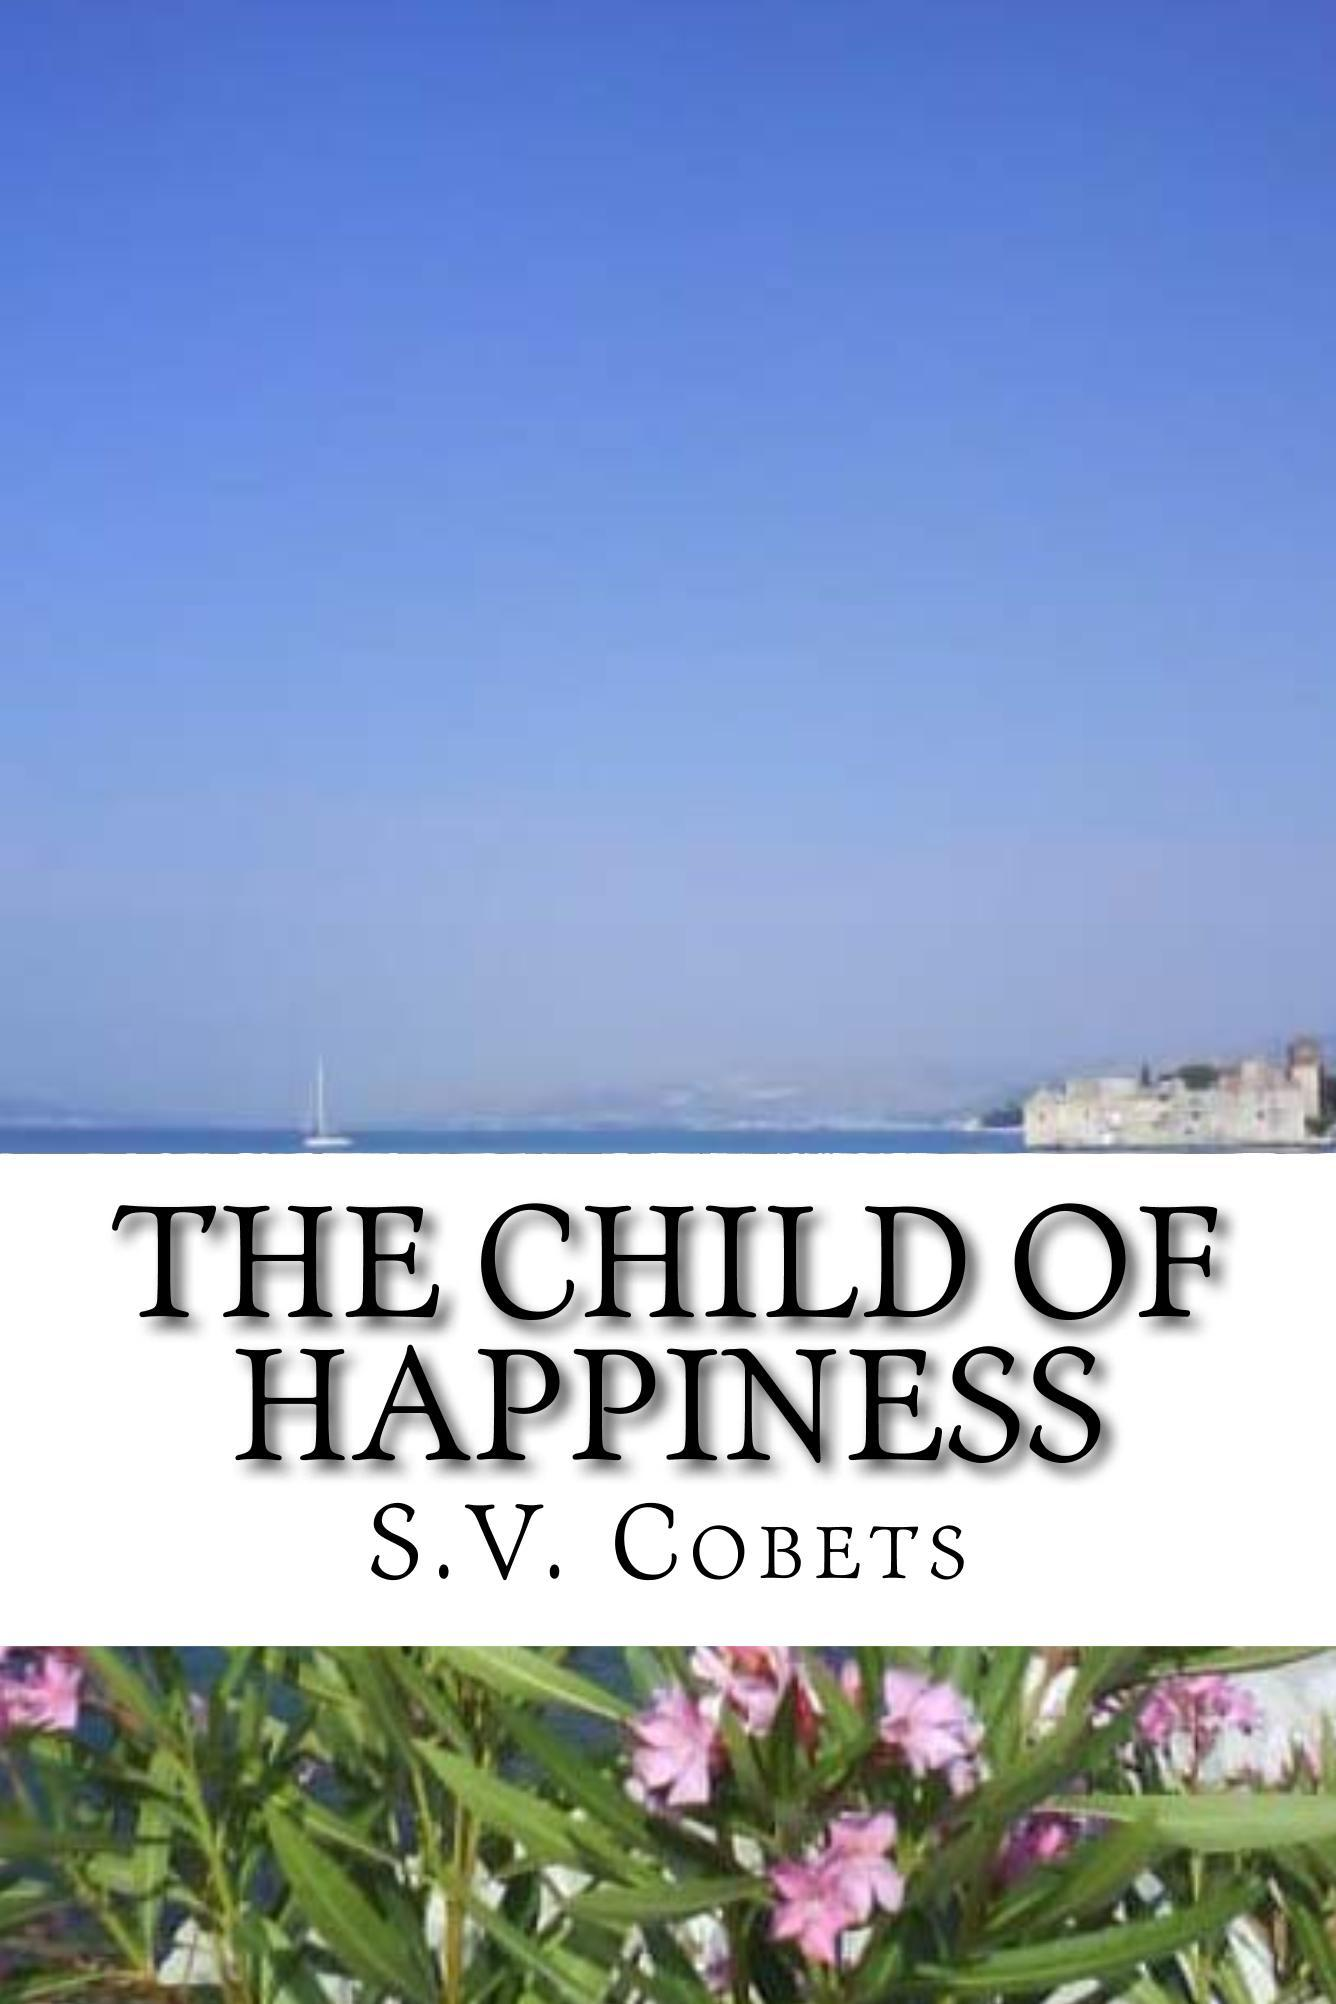 The Child of Happiness